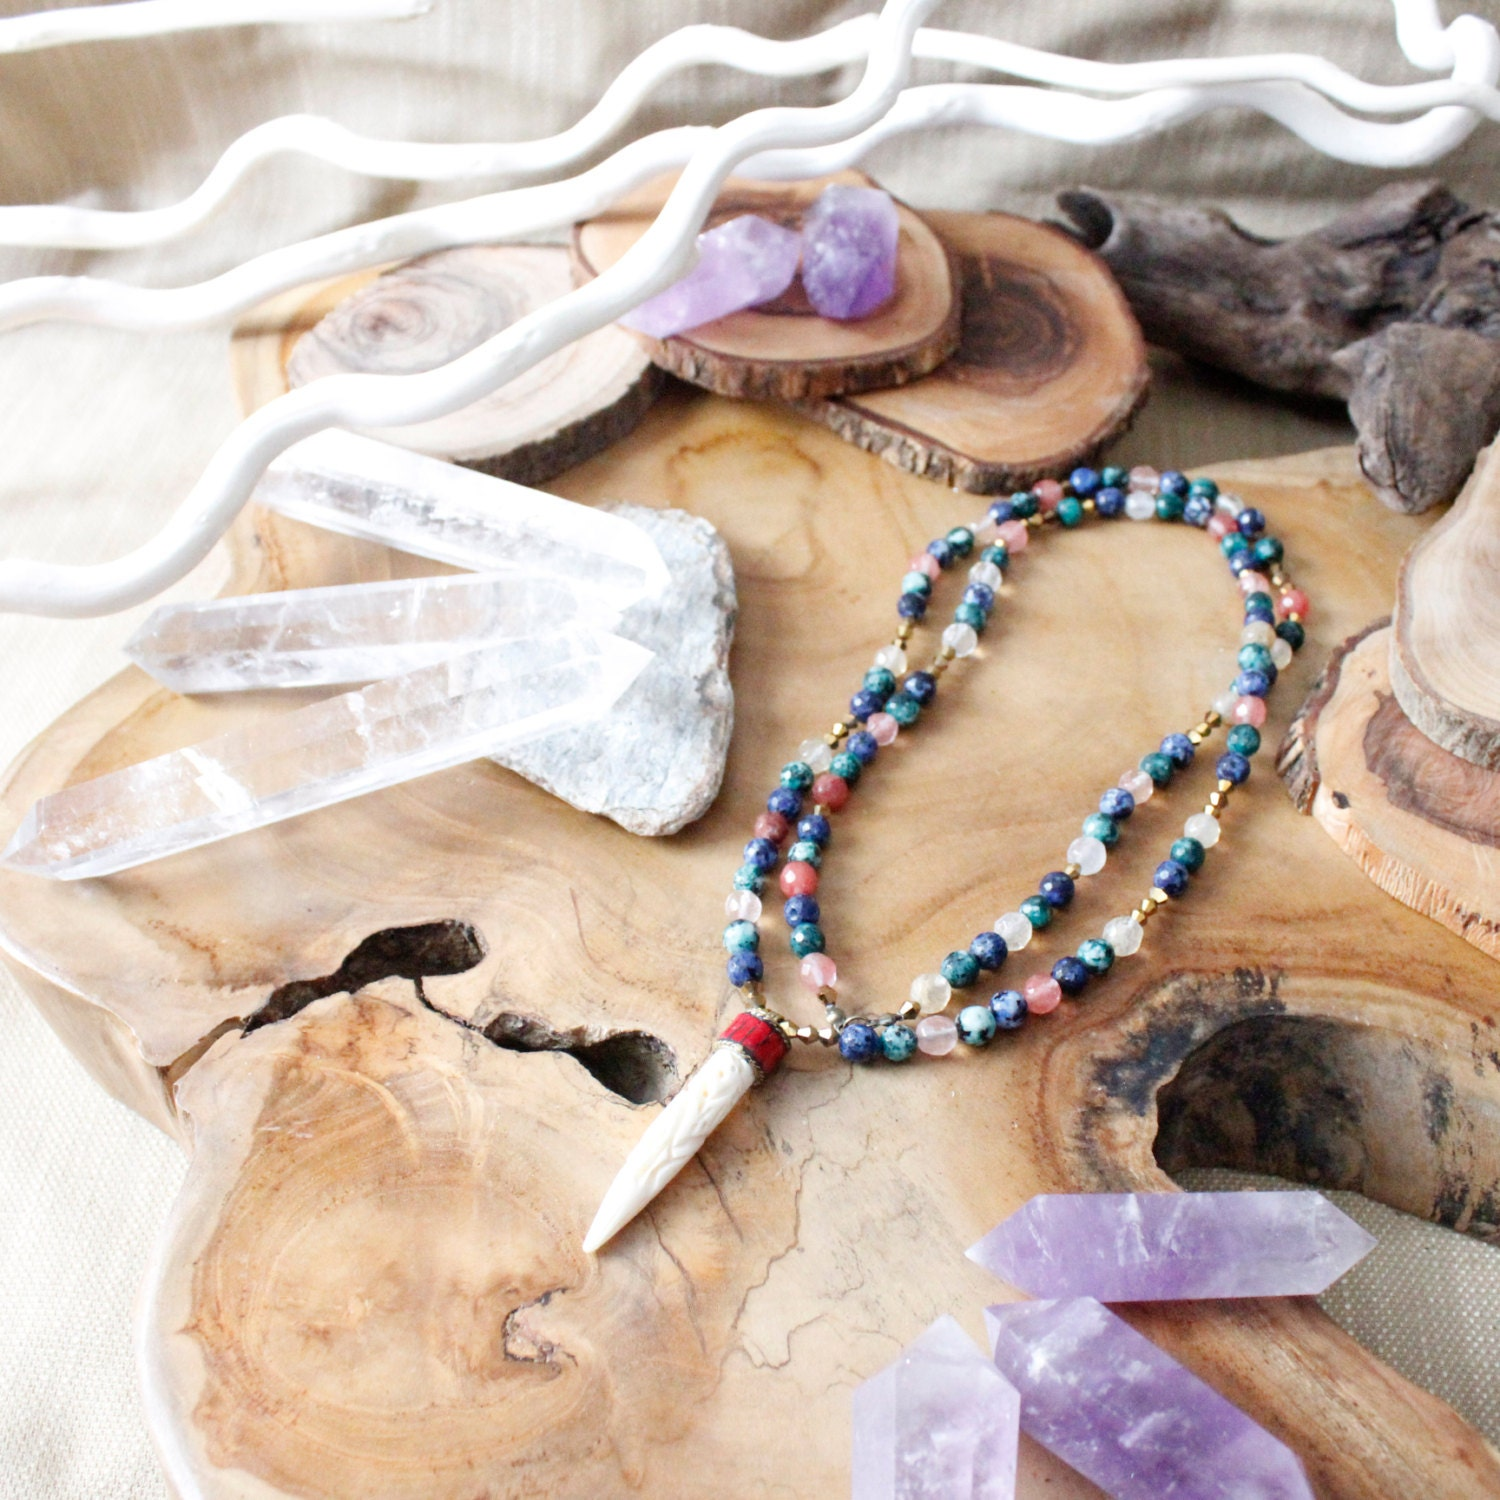 Blue Green Pink Marble Tusk Necklace/ Beaded Summer Fashion/ Bohemian Indie Hippie Gypsy/ Beaded Blue Pink Green Tusk Horn Tooth Festival